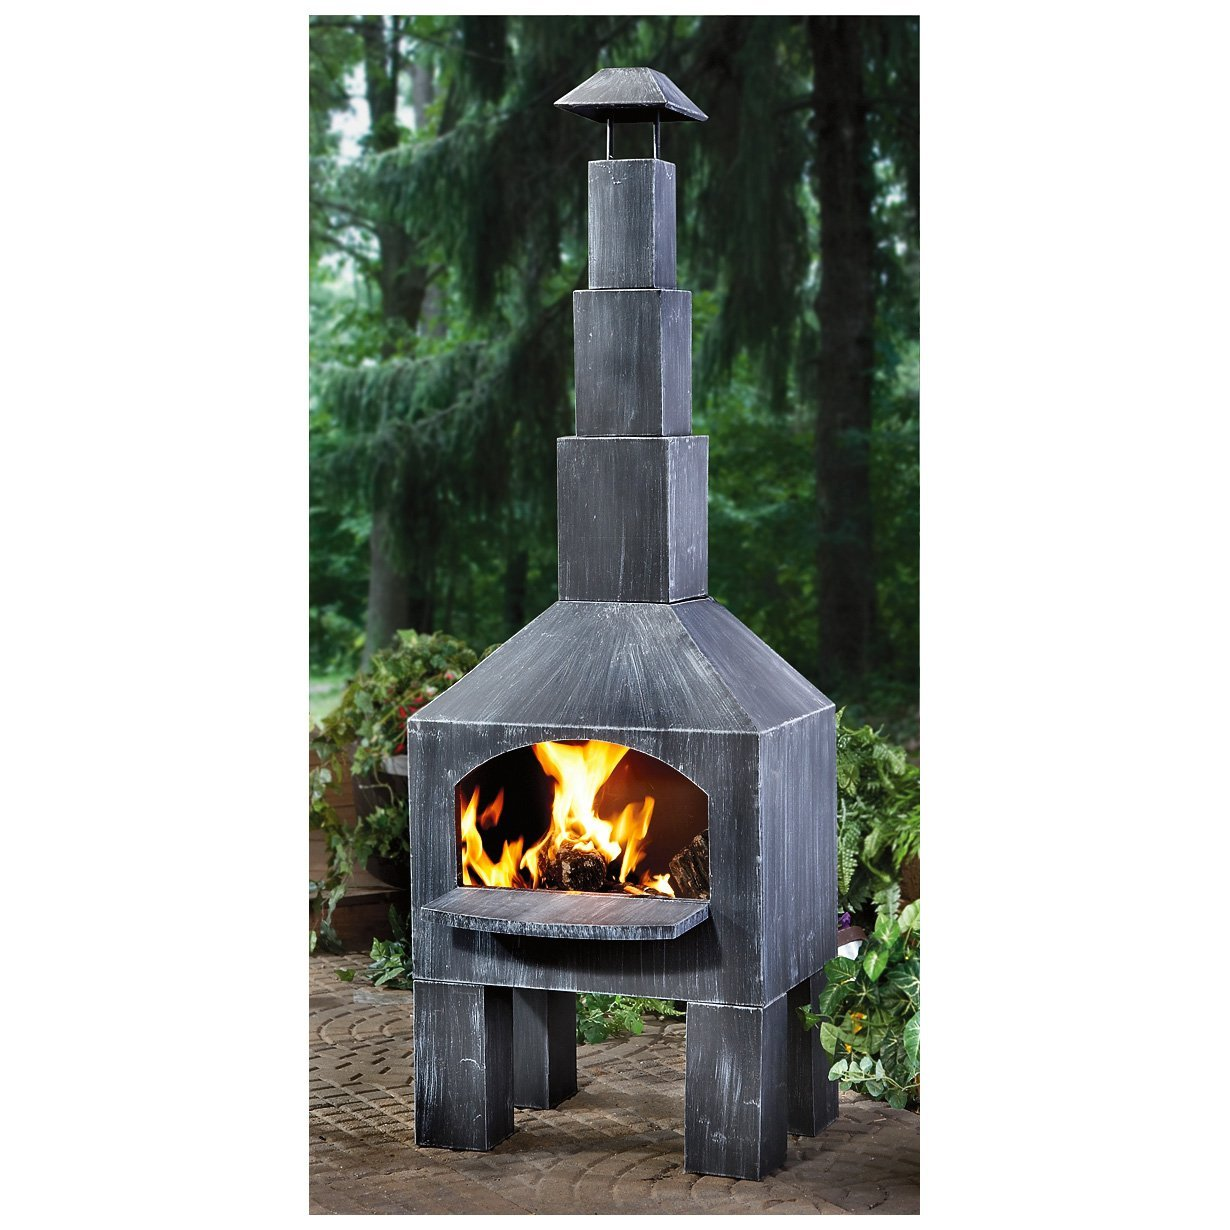 CASTLECREEK Cabin Cooking Steel Chiminea Patio Fireplace For Patio Furniture Ideas